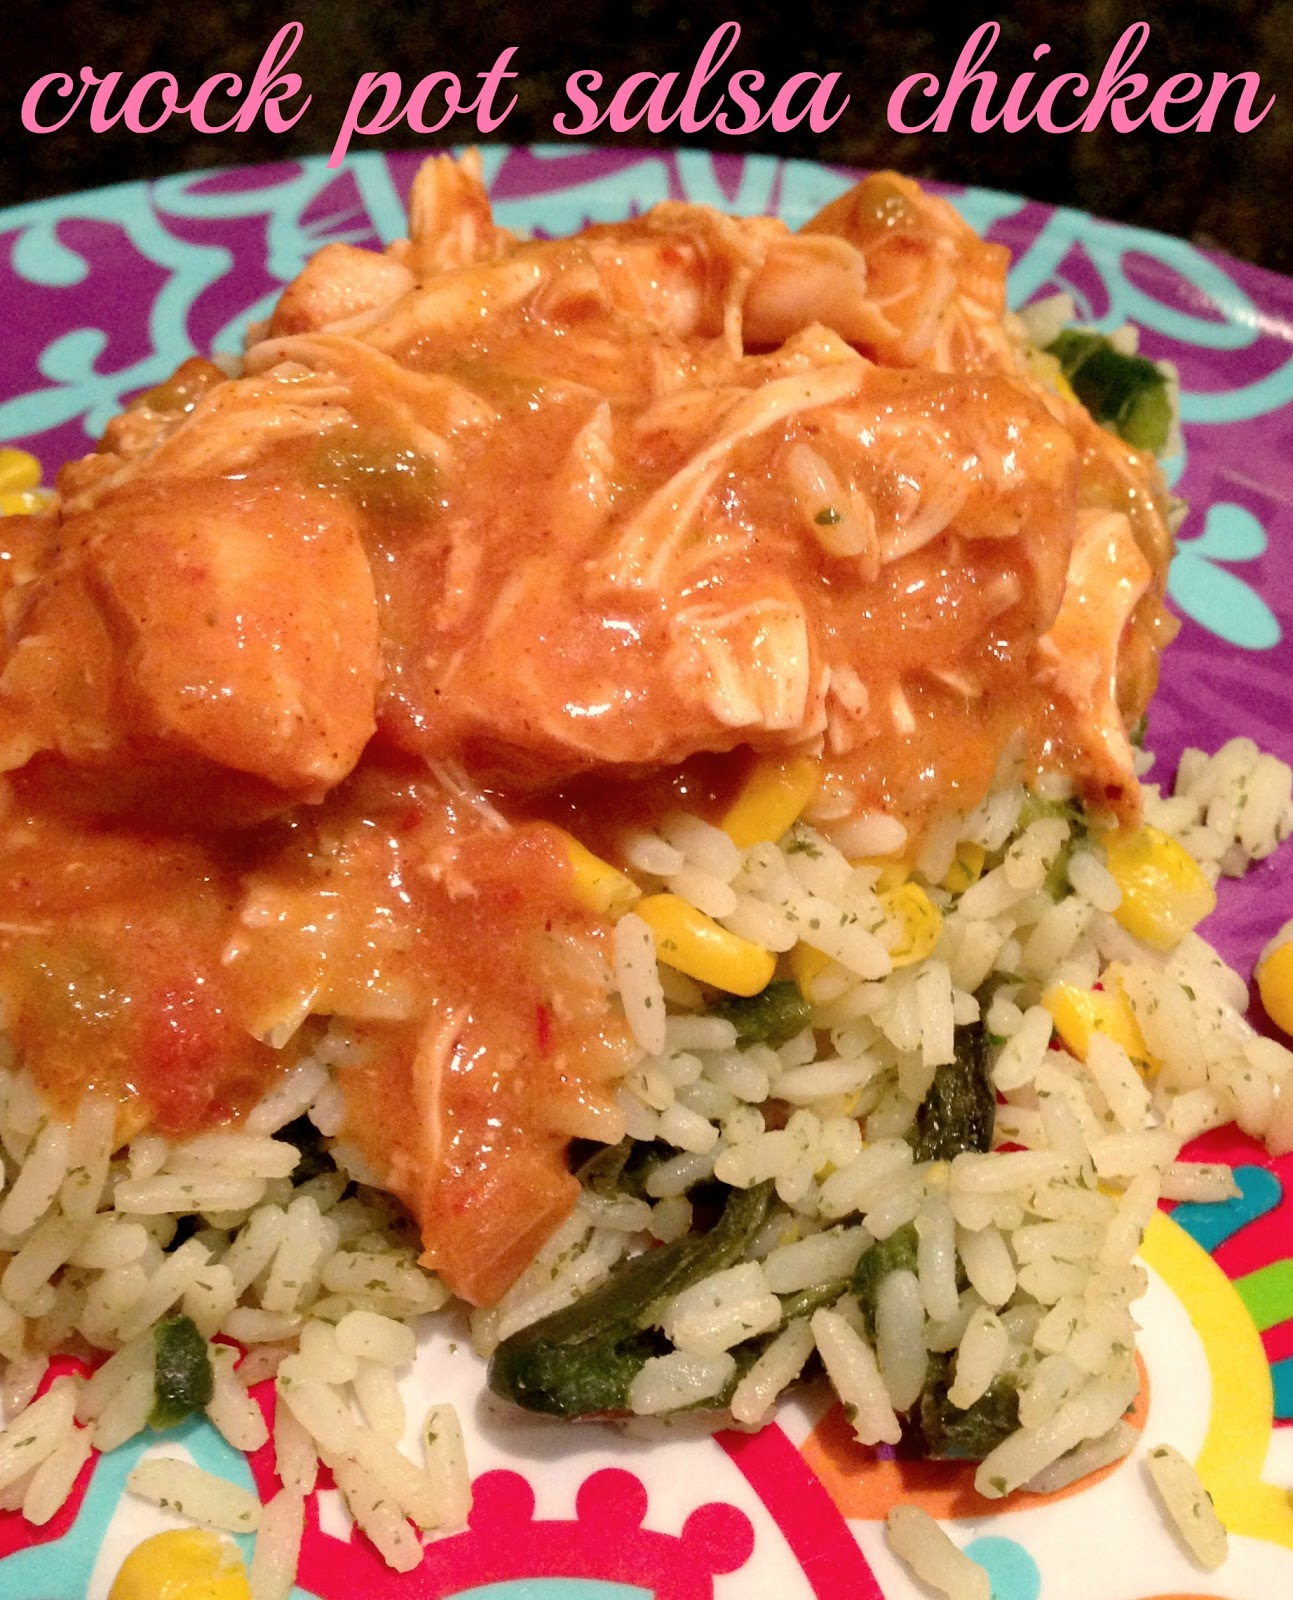 Top frozen chicken salsa crockpot recipes and other great tasting recipes with a healthy slant from moderngamethrones.ga